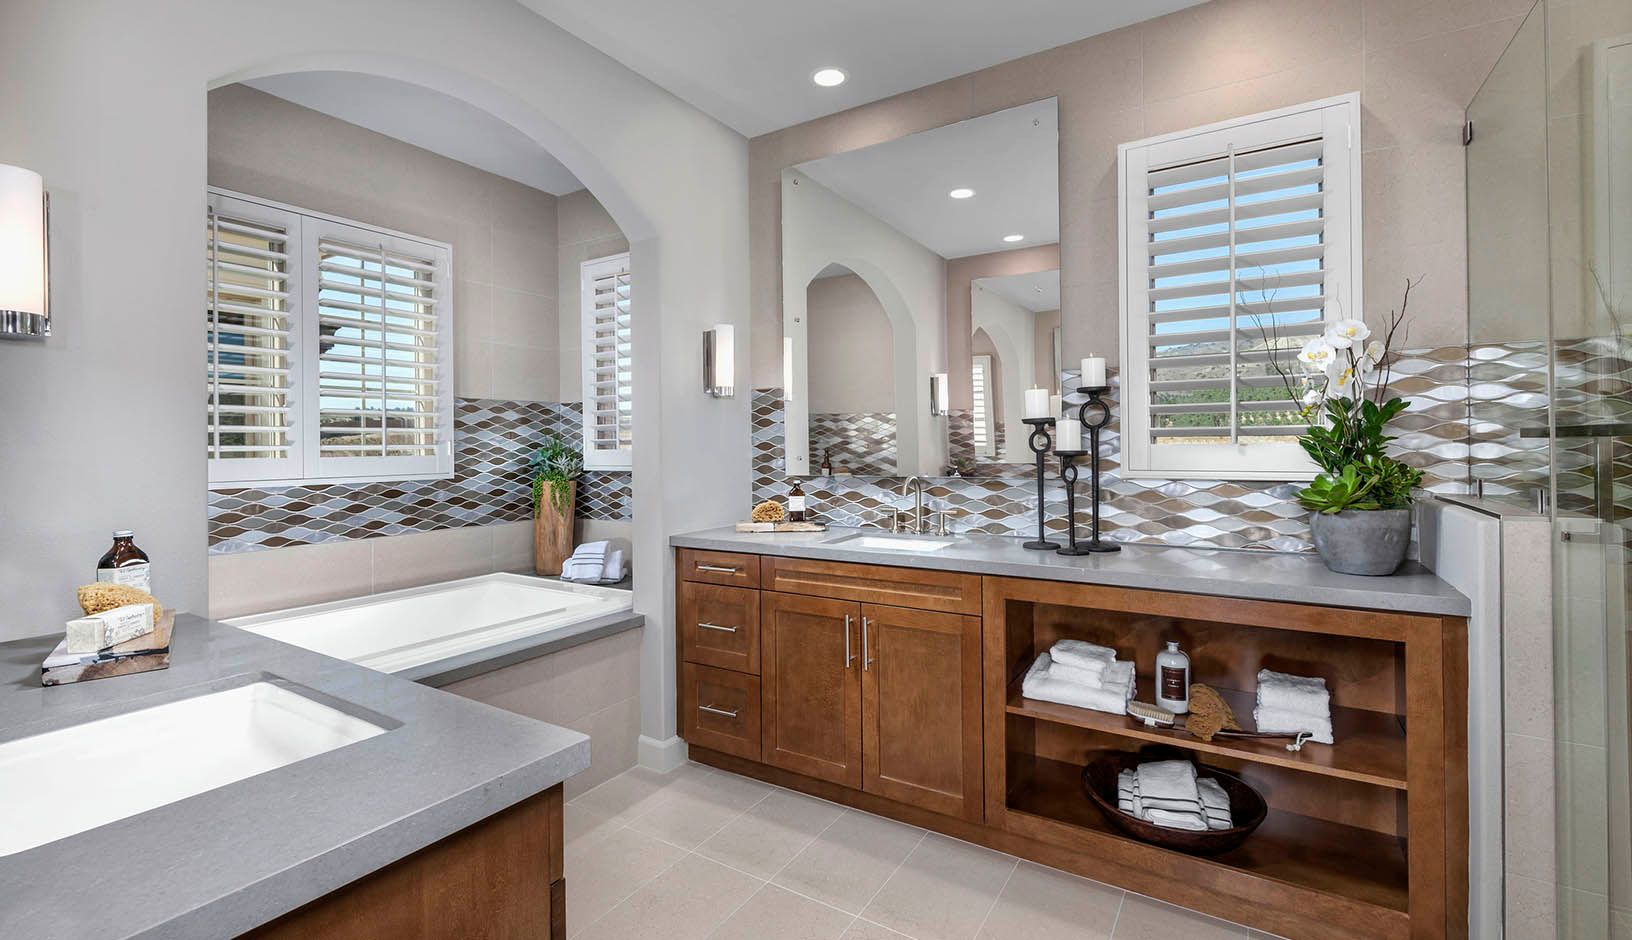 Bathroom featured in the Residence 3 By TRI Pointe Homes in Orange County, CA